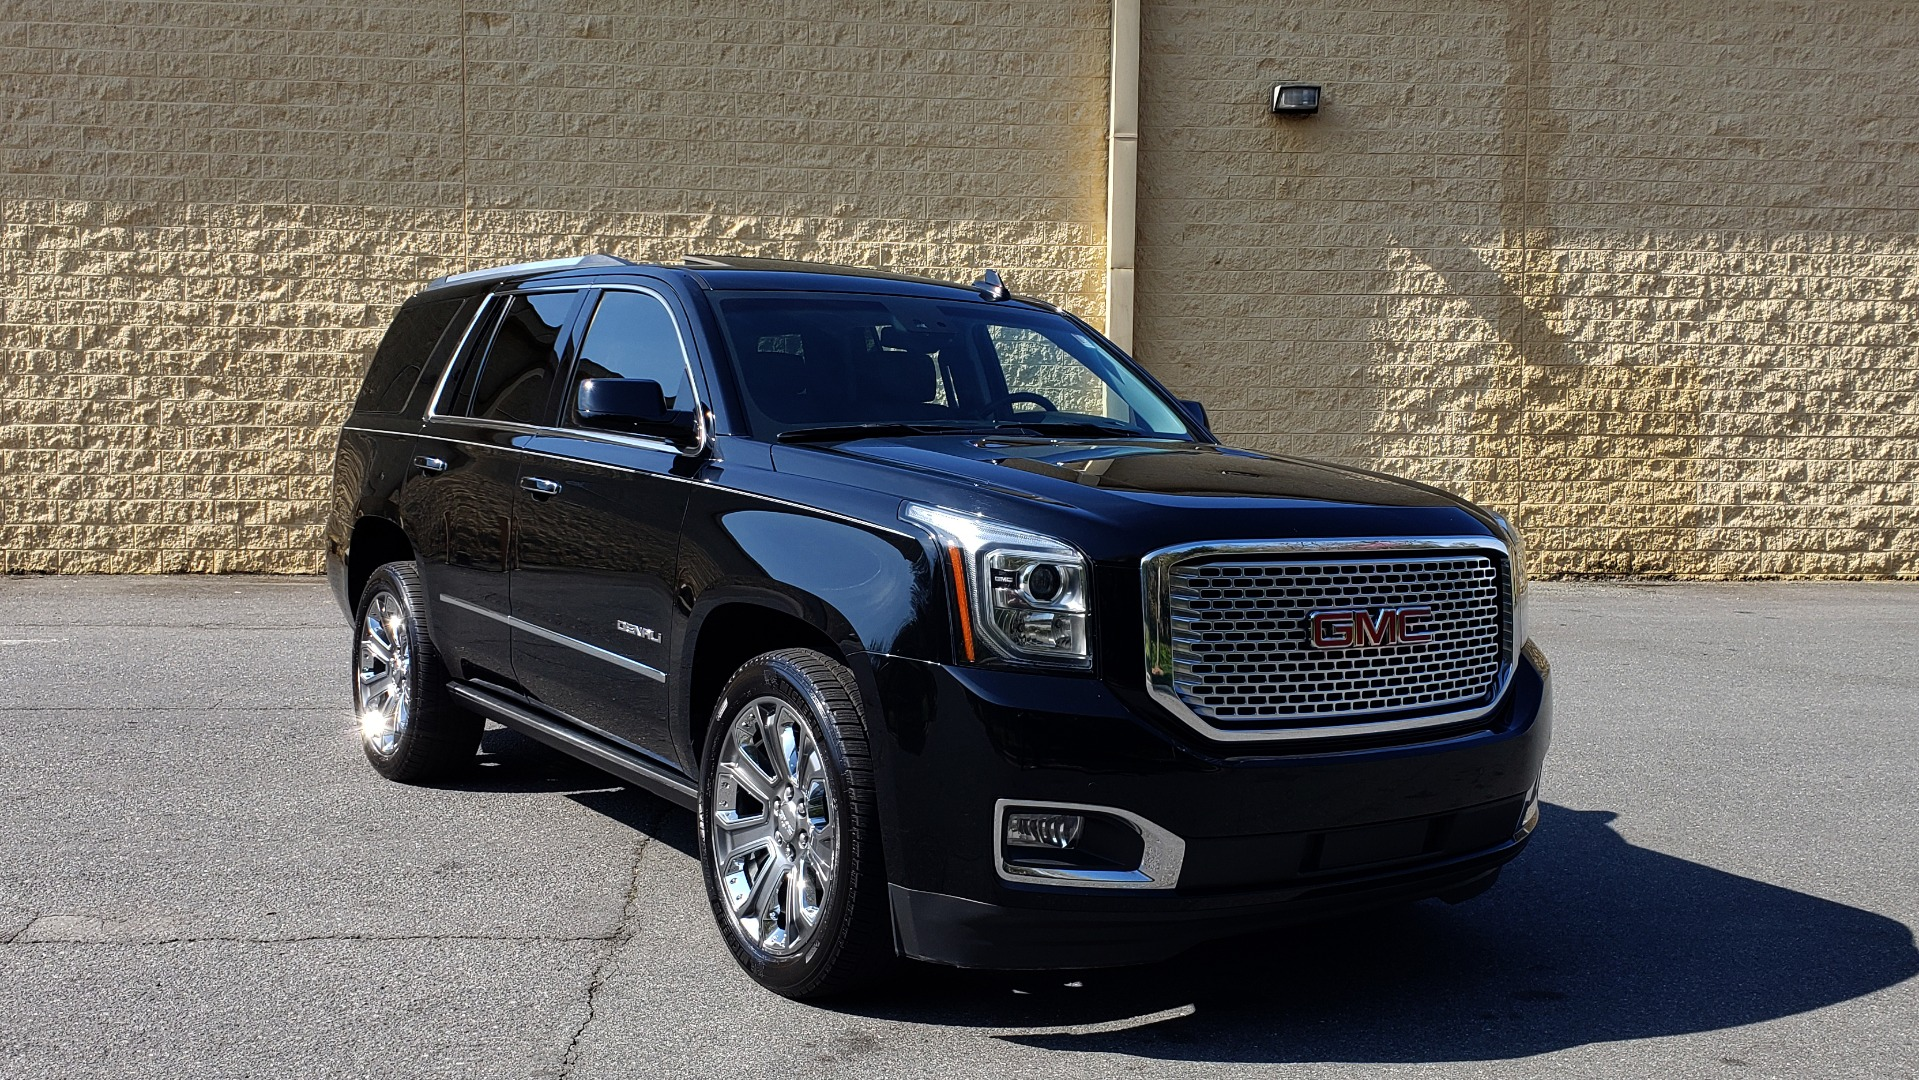 Used 2016 GMC YUKON DENALI 4WD / OPEN ROAD / NAV / ENTERTAINMENT / 3-ROW for sale Sold at Formula Imports in Charlotte NC 28227 4